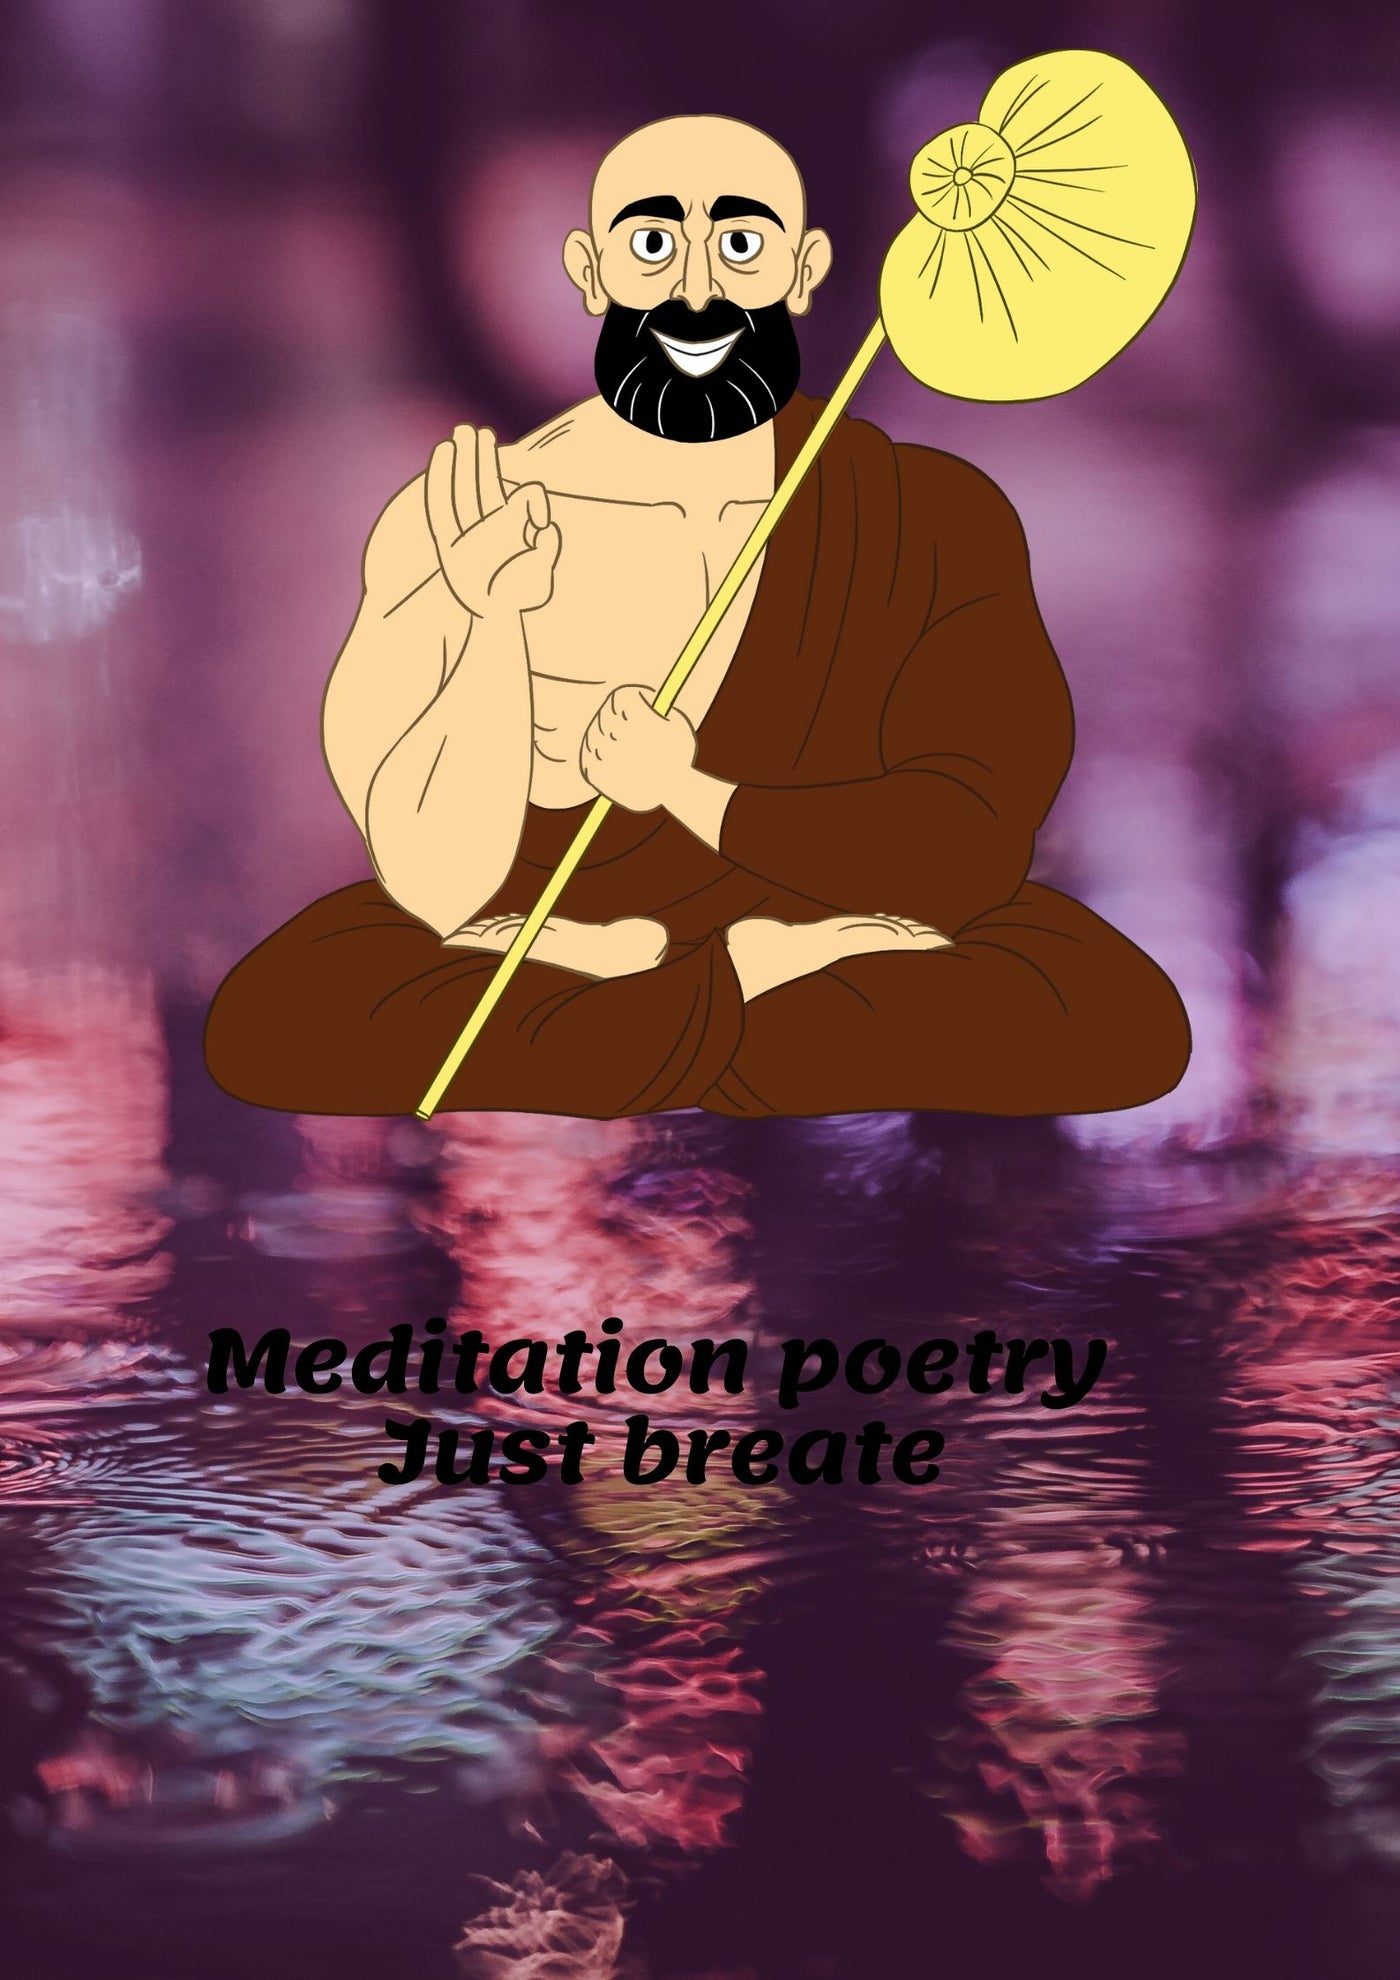 Meditation poetry - Just breathe